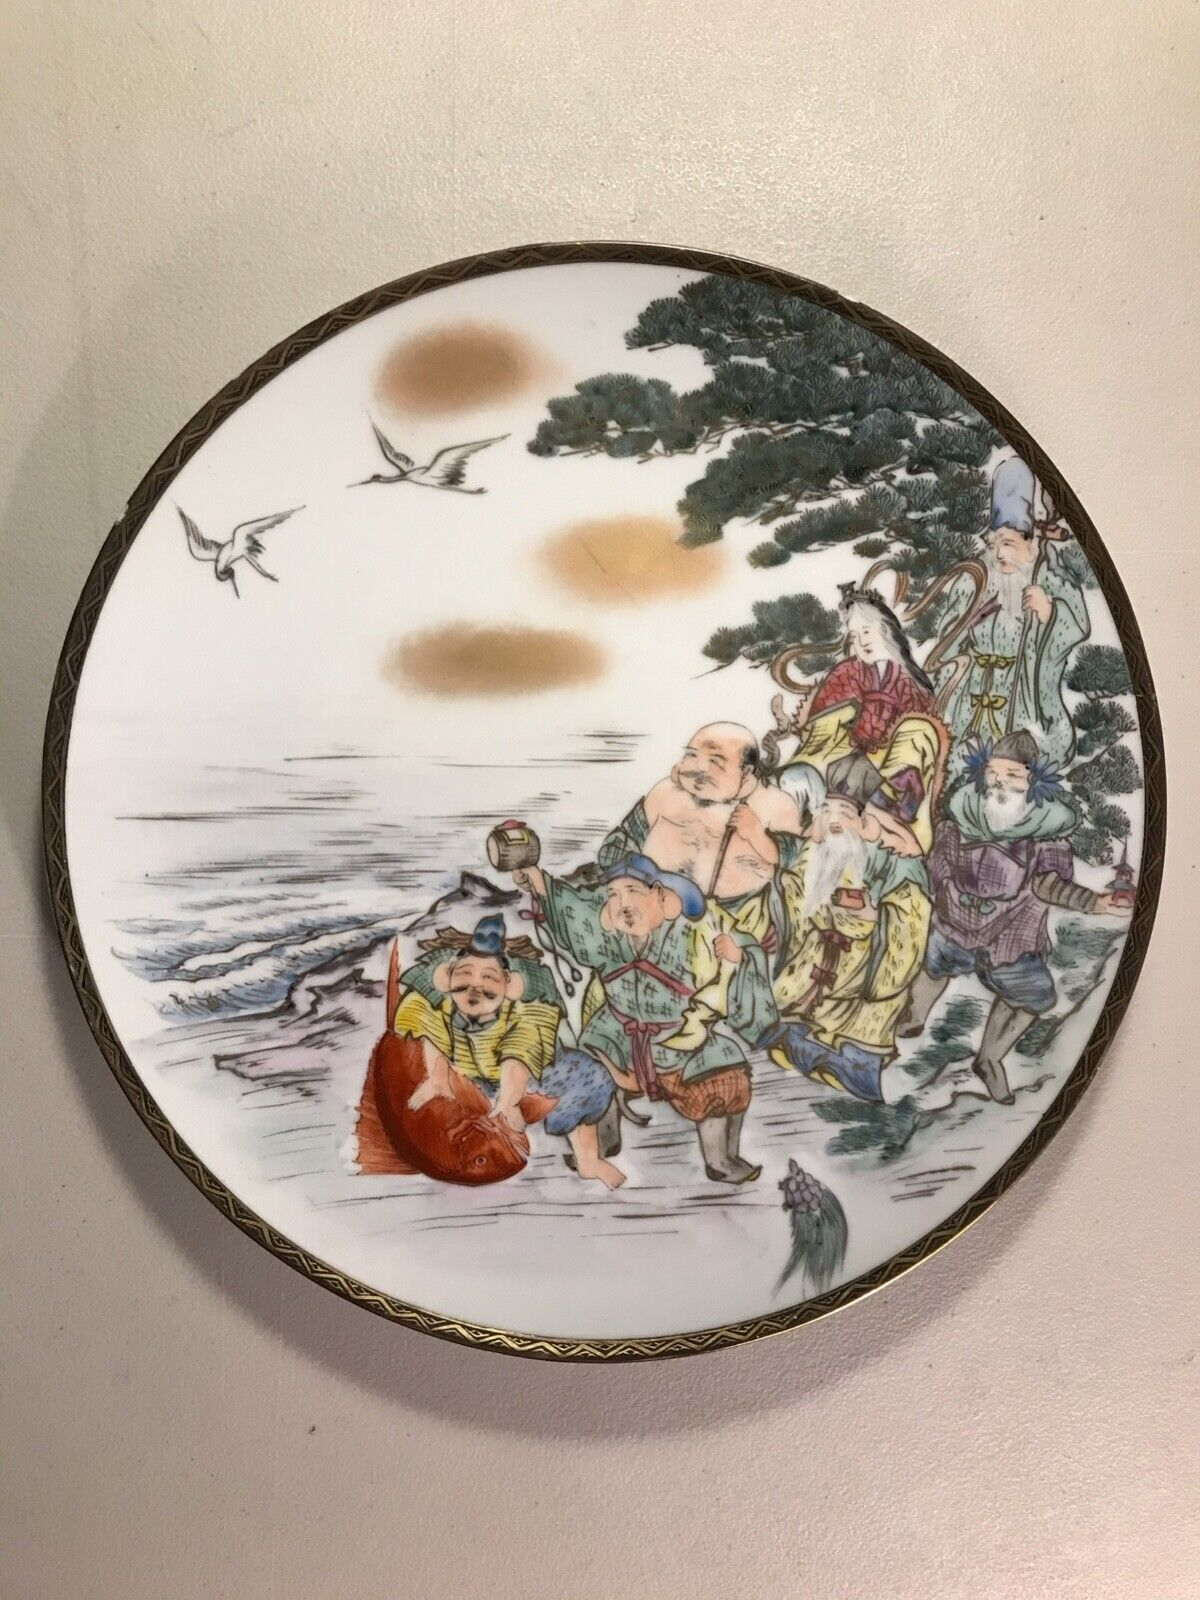 RARE Antique KUTANI The Seven Gods Of Fortune Hand Painted Plate 12 Excellent - $299.00